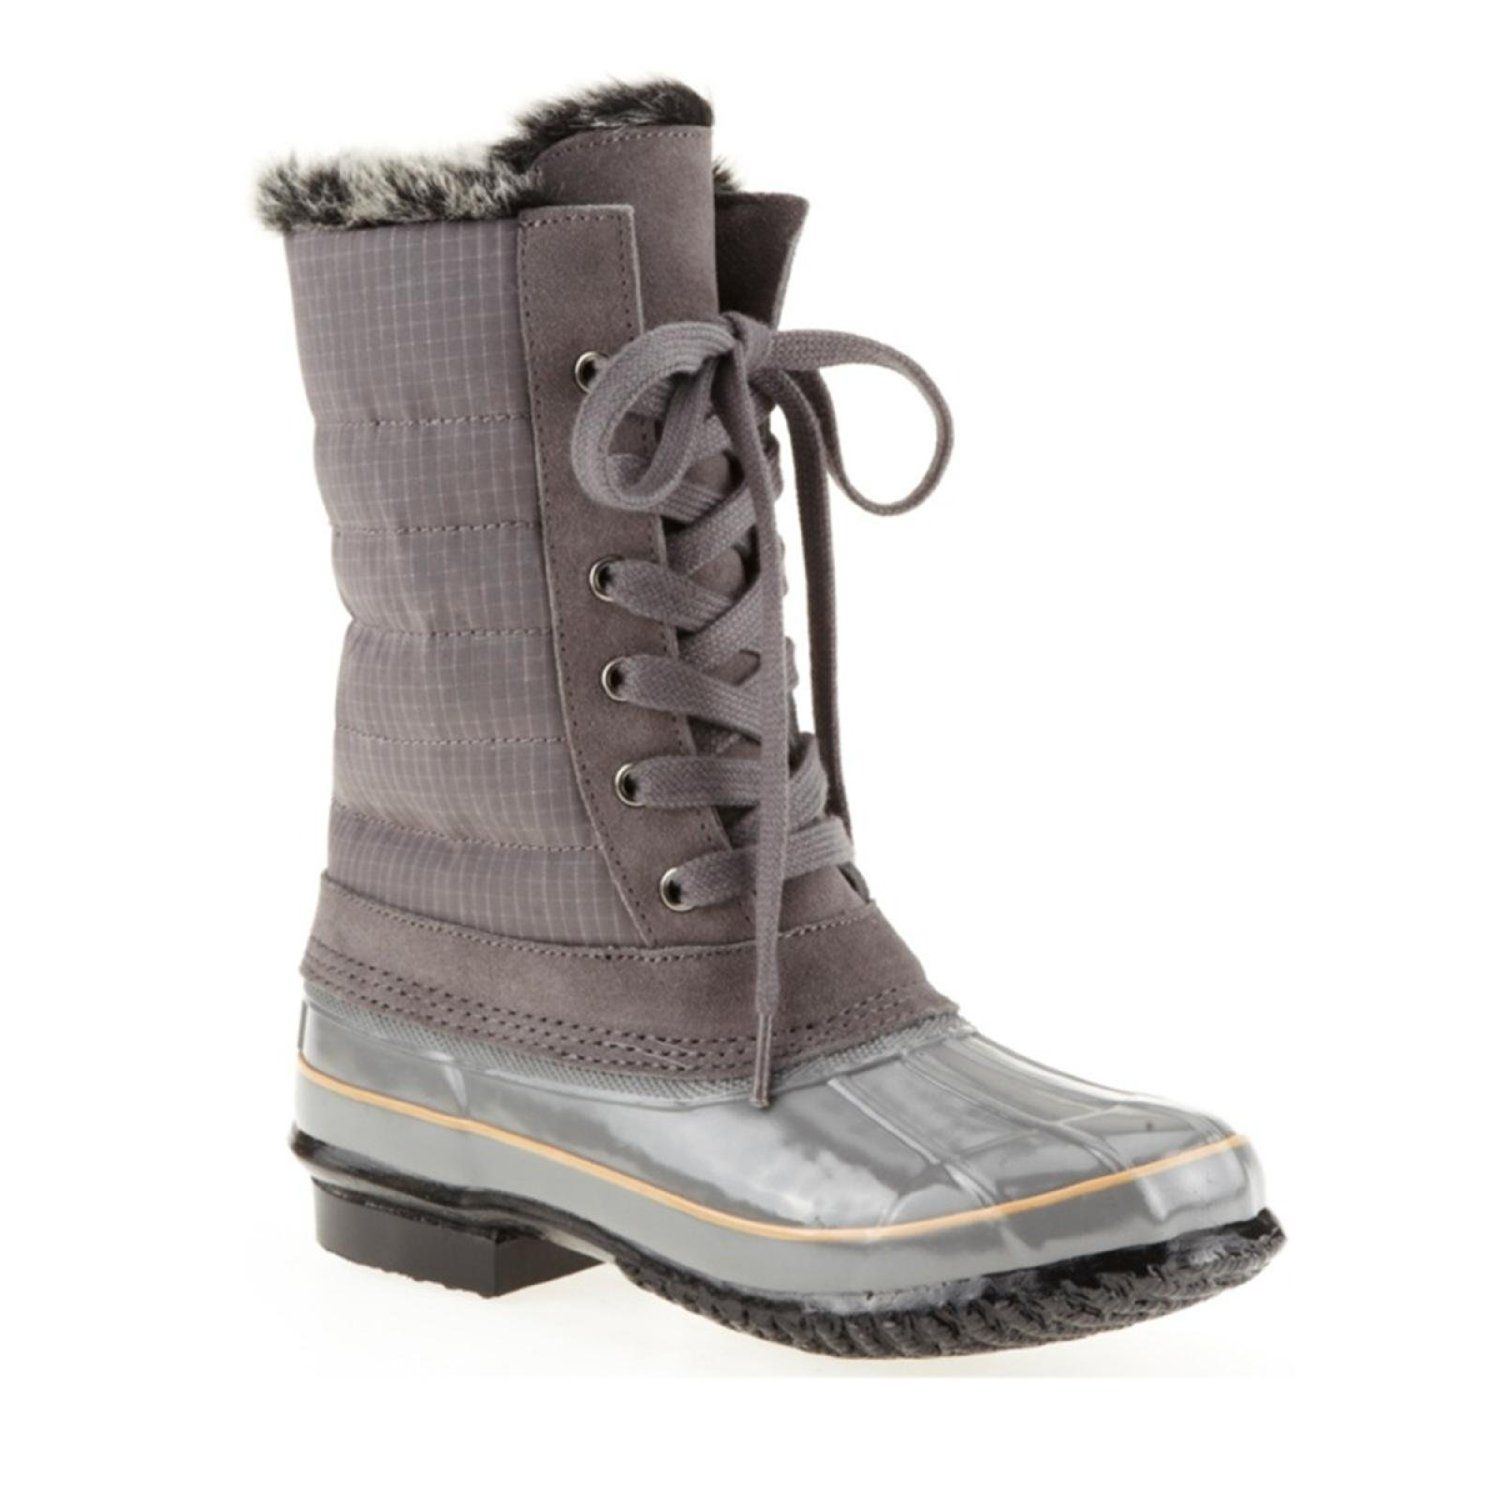 cute snow boots | wants | Boots, Cute snow boots, Shoe boots